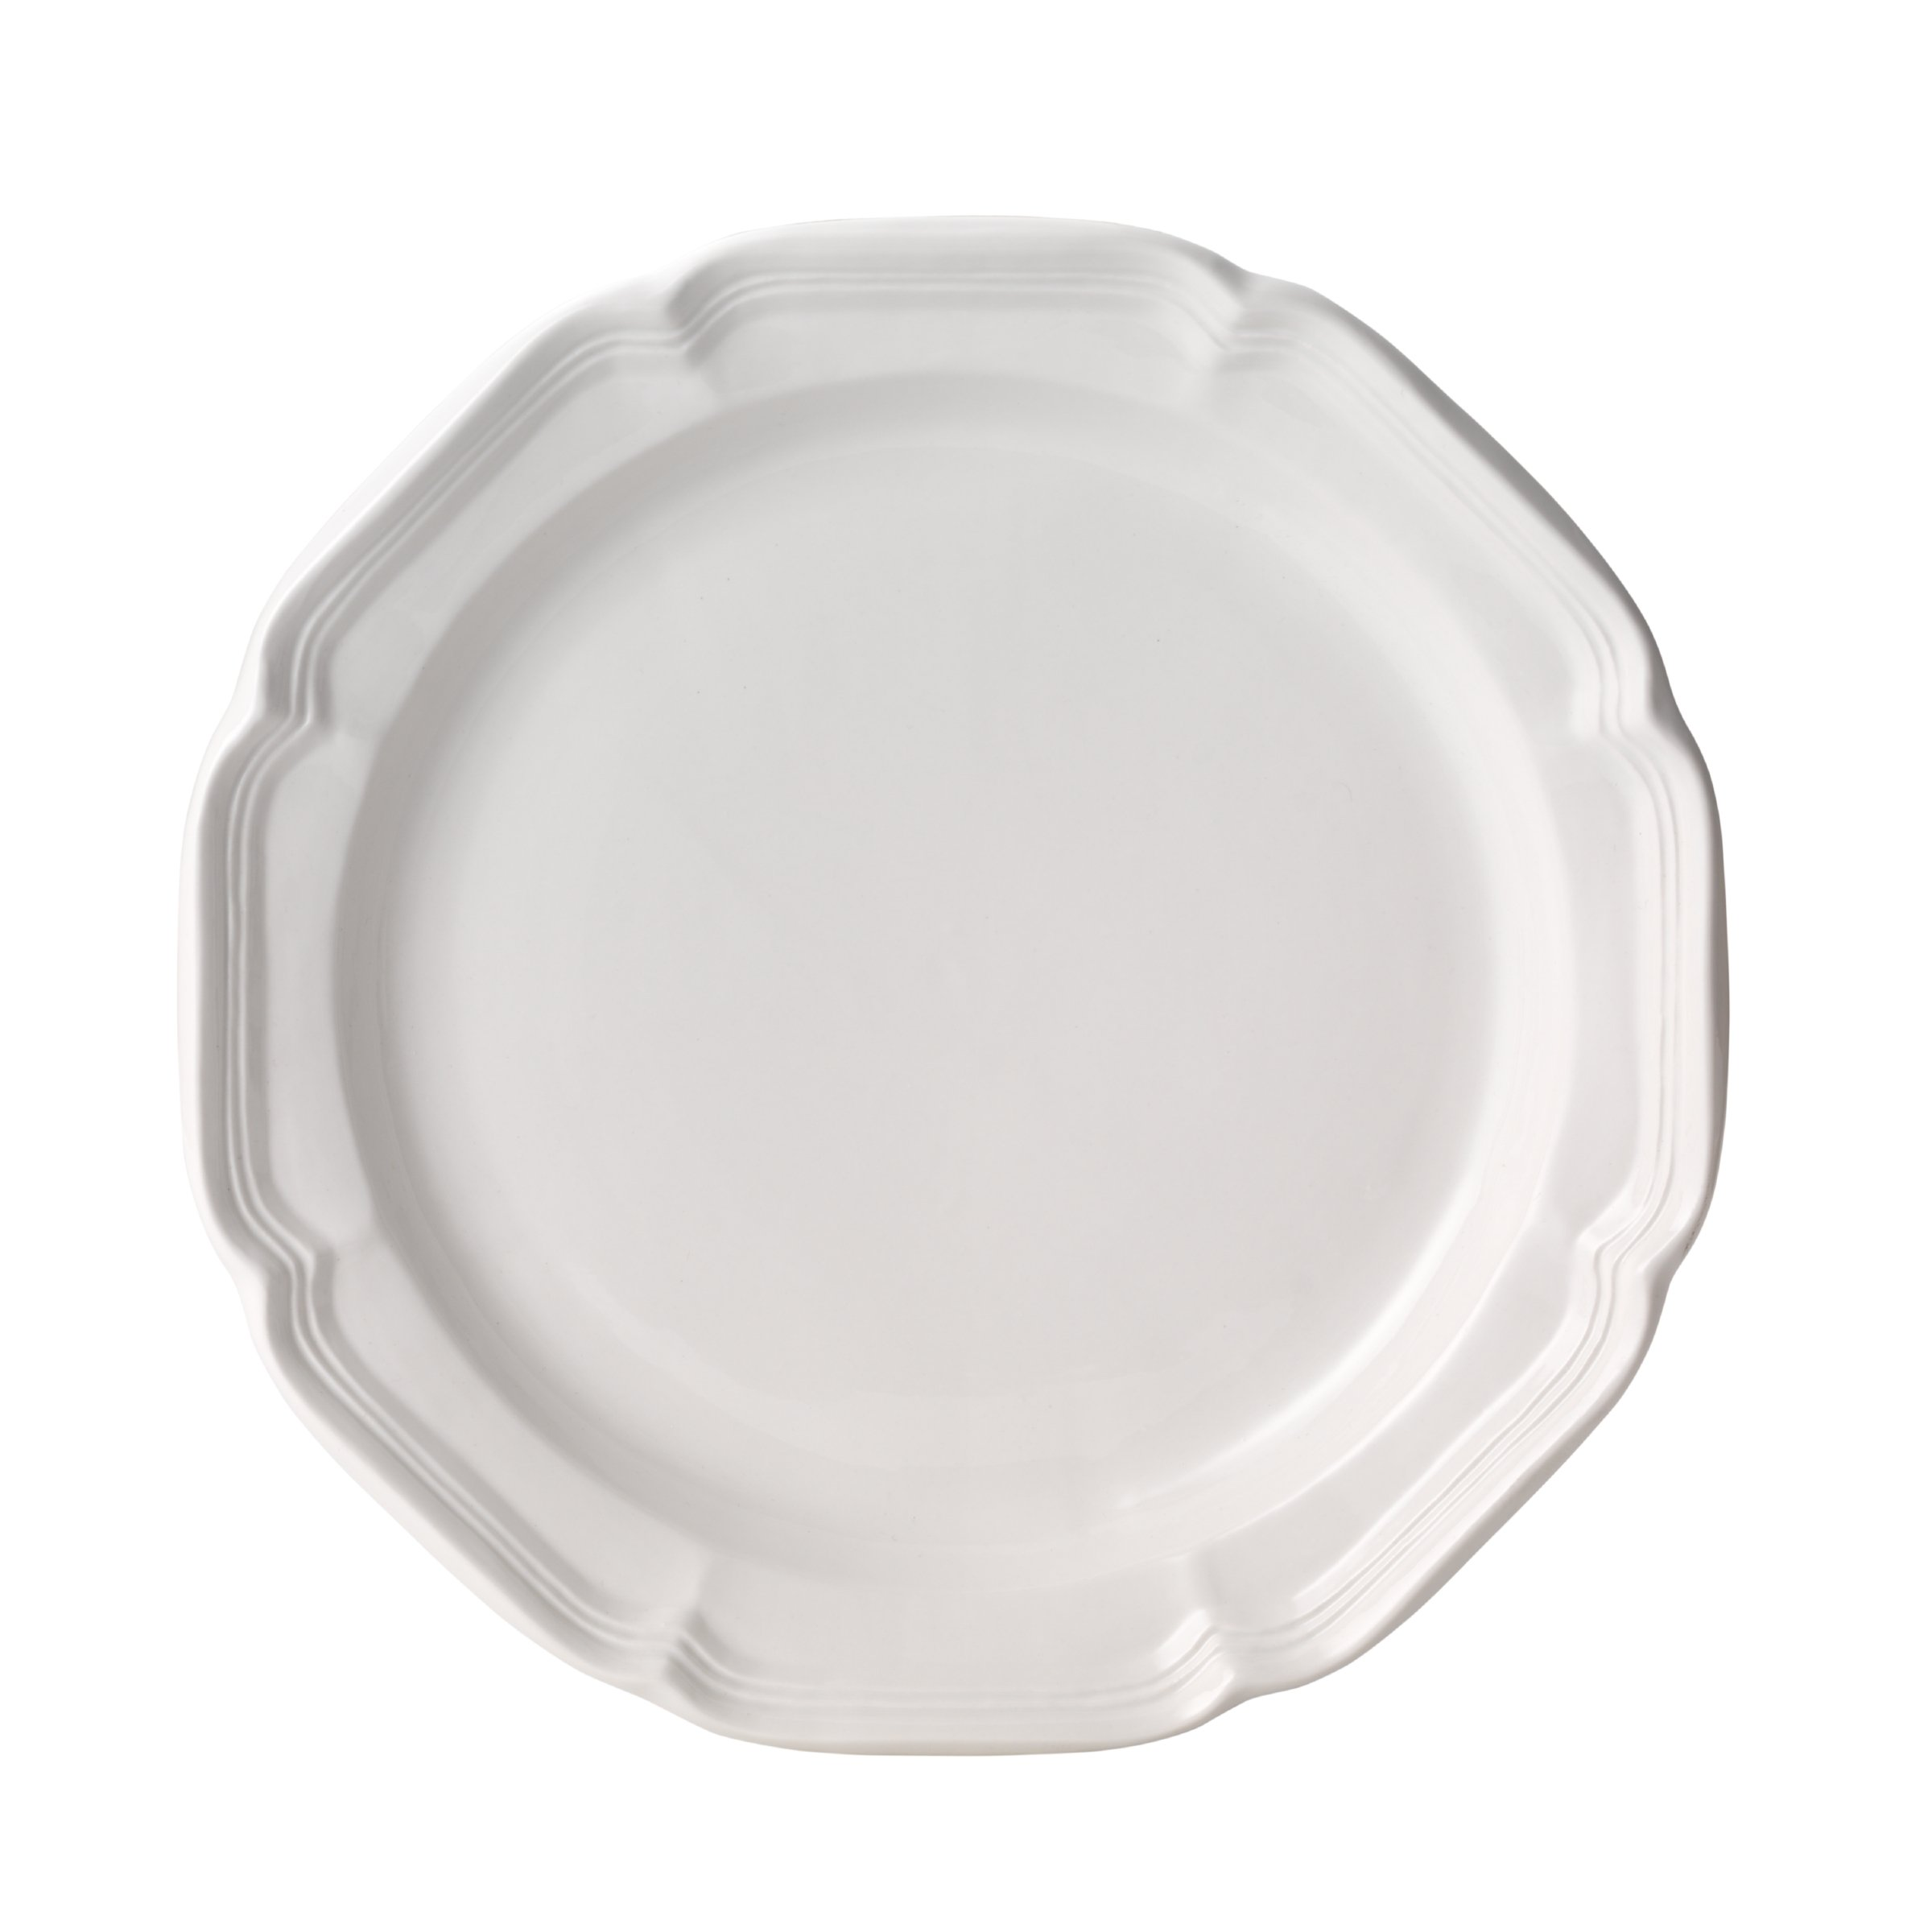 Mikasa French Country Dinner Plate, 10.75'', White by Mikasa (Image #1)